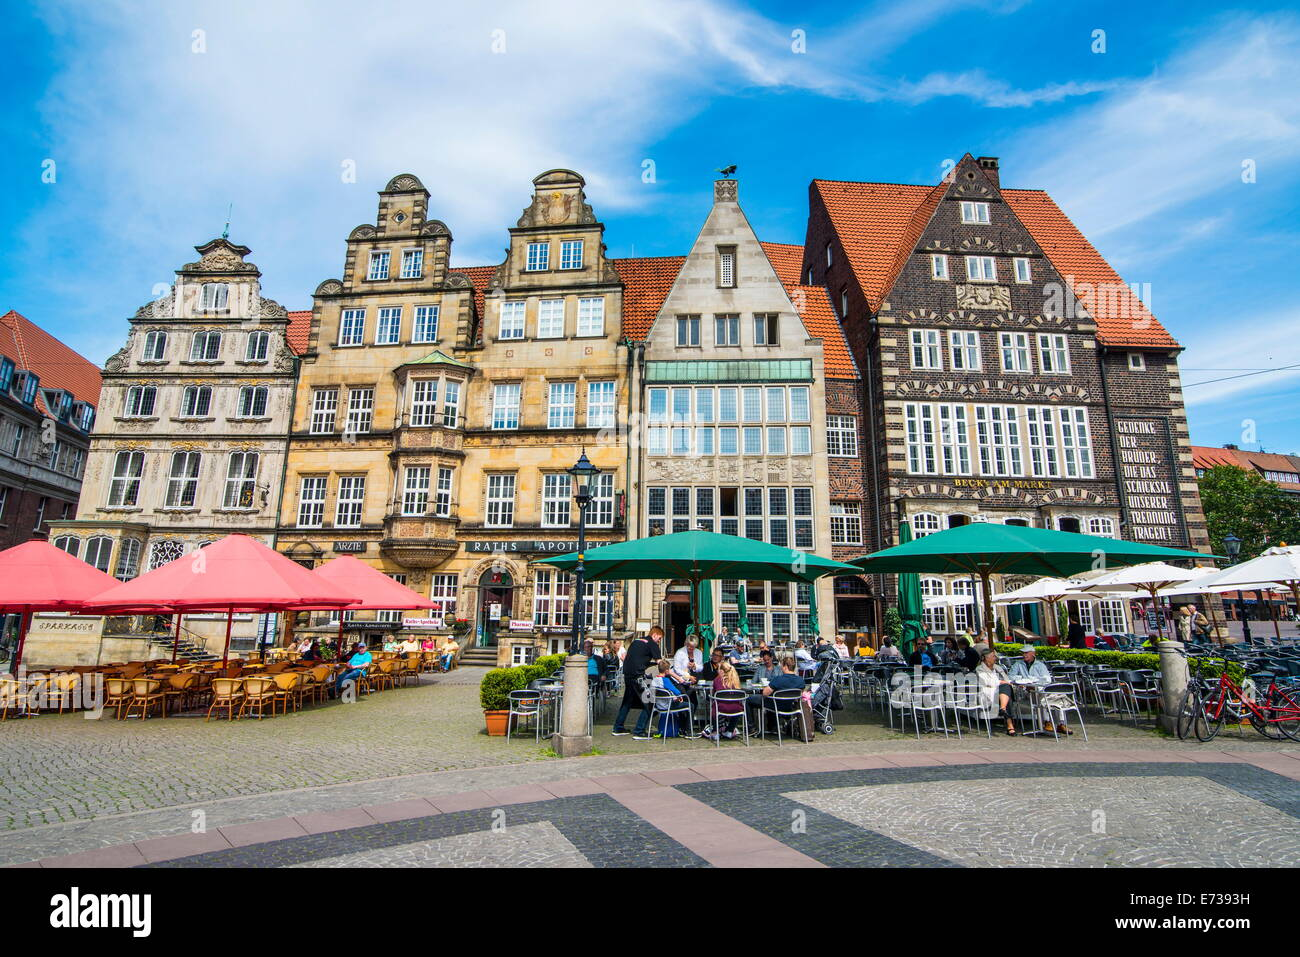 bremen houses stockfotos bremen houses bilder alamy. Black Bedroom Furniture Sets. Home Design Ideas